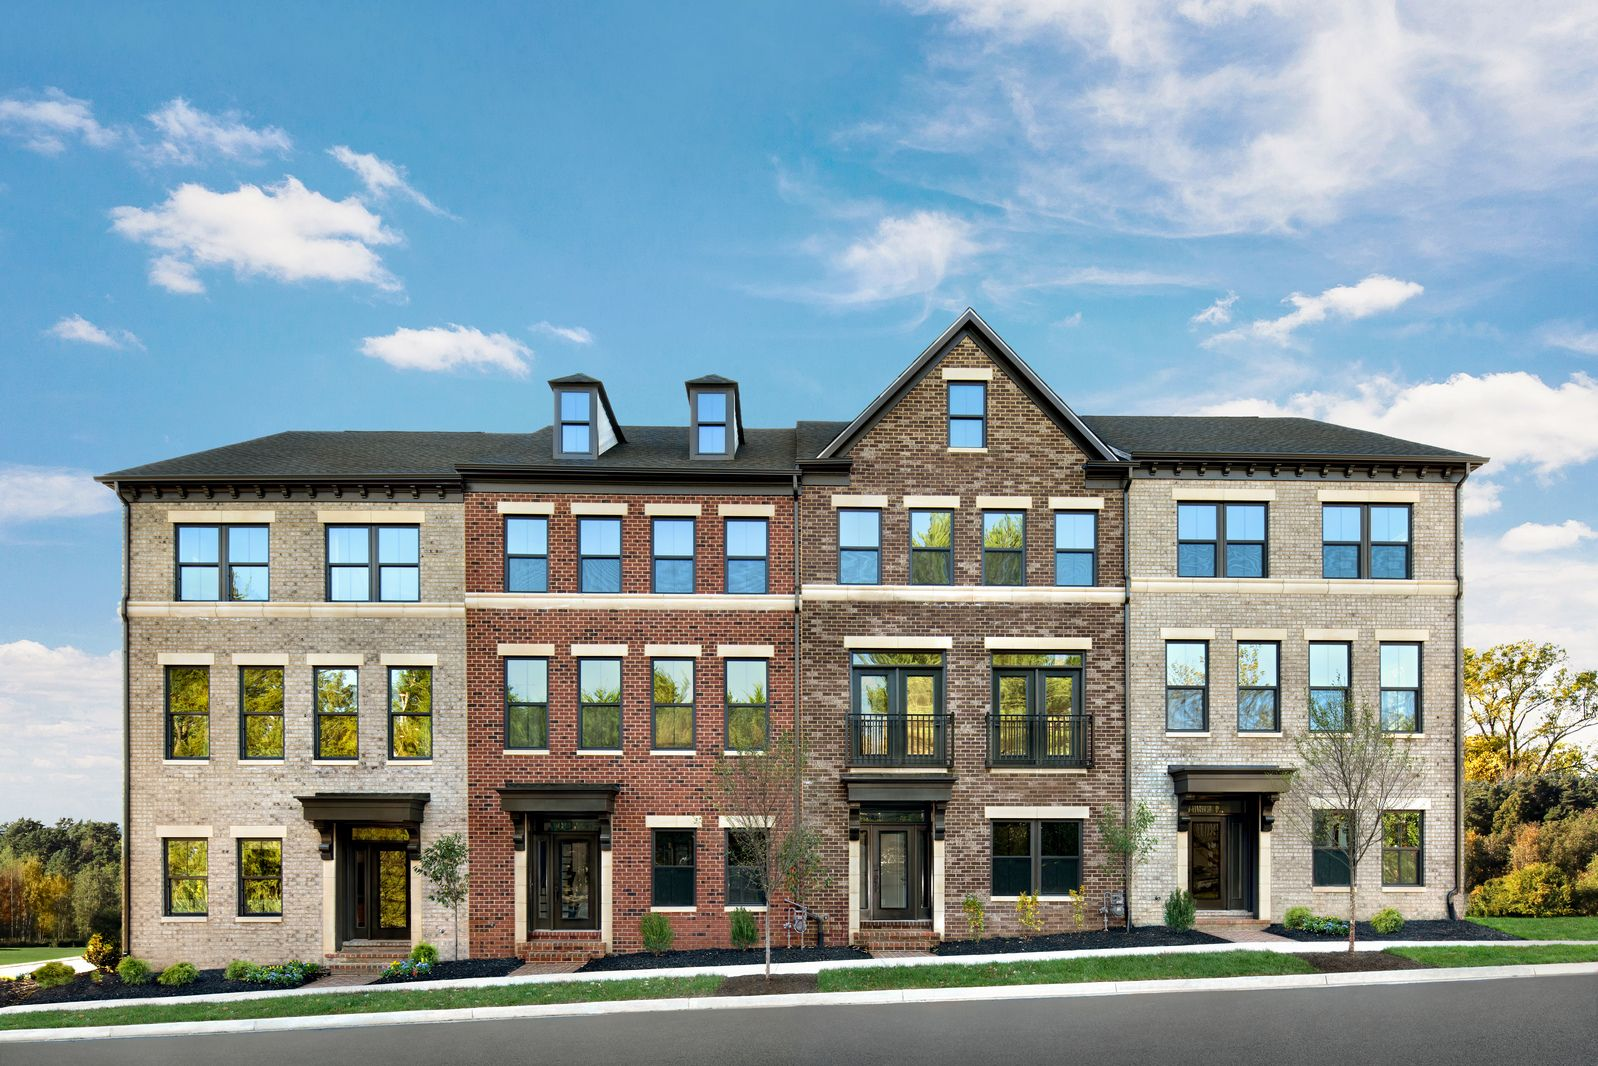 GRAND TOWNHOMES UP TO 5 BEDROOMS:Discover our private enclave of just 27 luxury townhomes in an incredible North Arlington location. Sales are underway. Schedule a visit today.